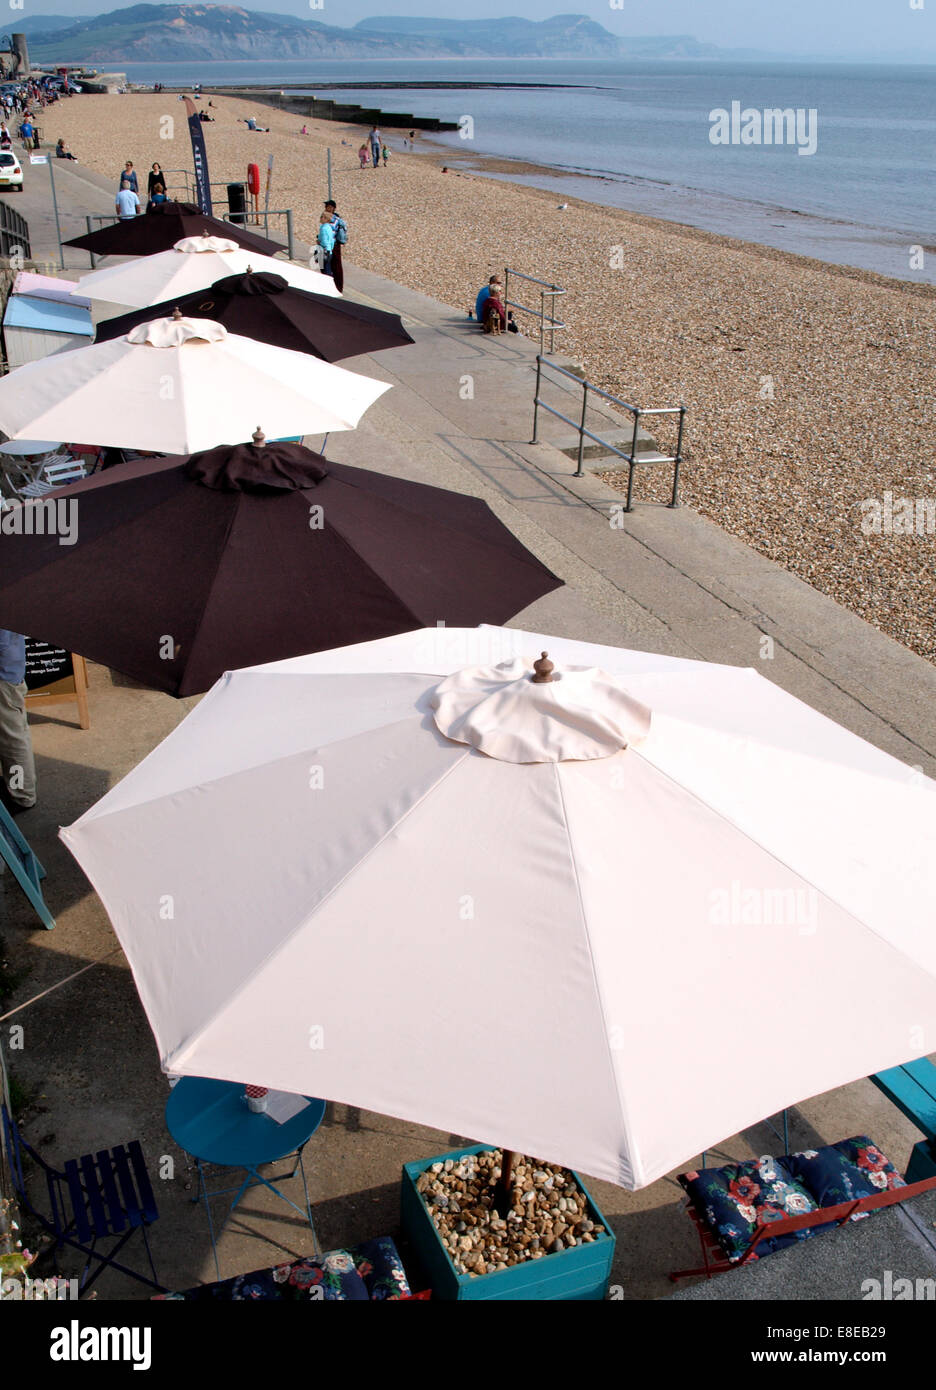 Restaurant outside eating area on the seafront, Lyme Regis, Dorset, UK - Stock Image